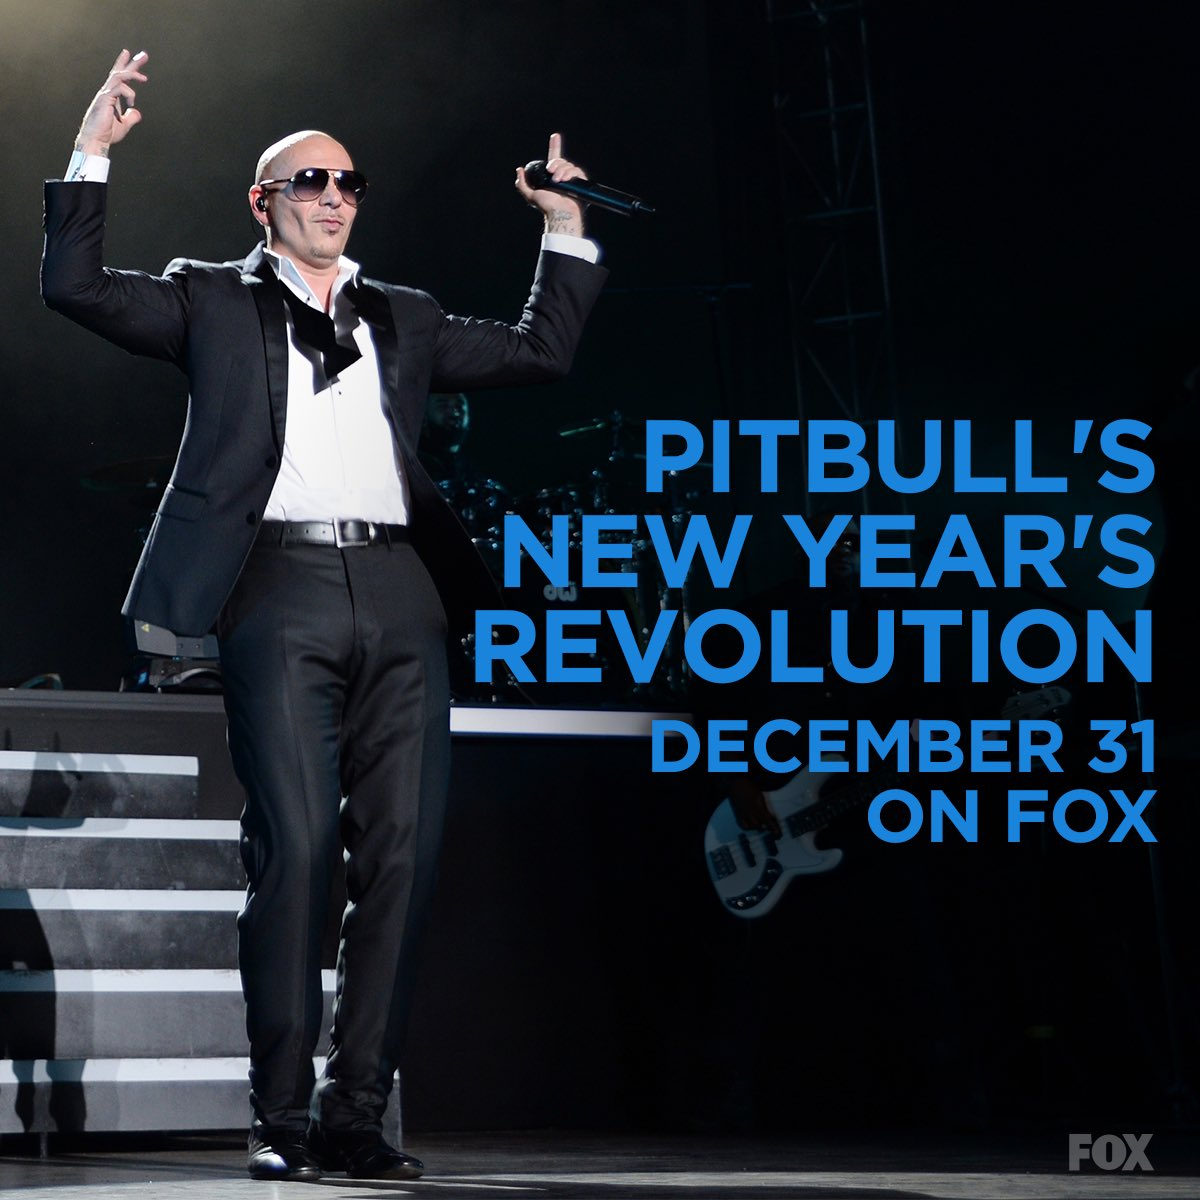 Going BIG for #PitbullNYE 2016. Who should party with me in Miami?